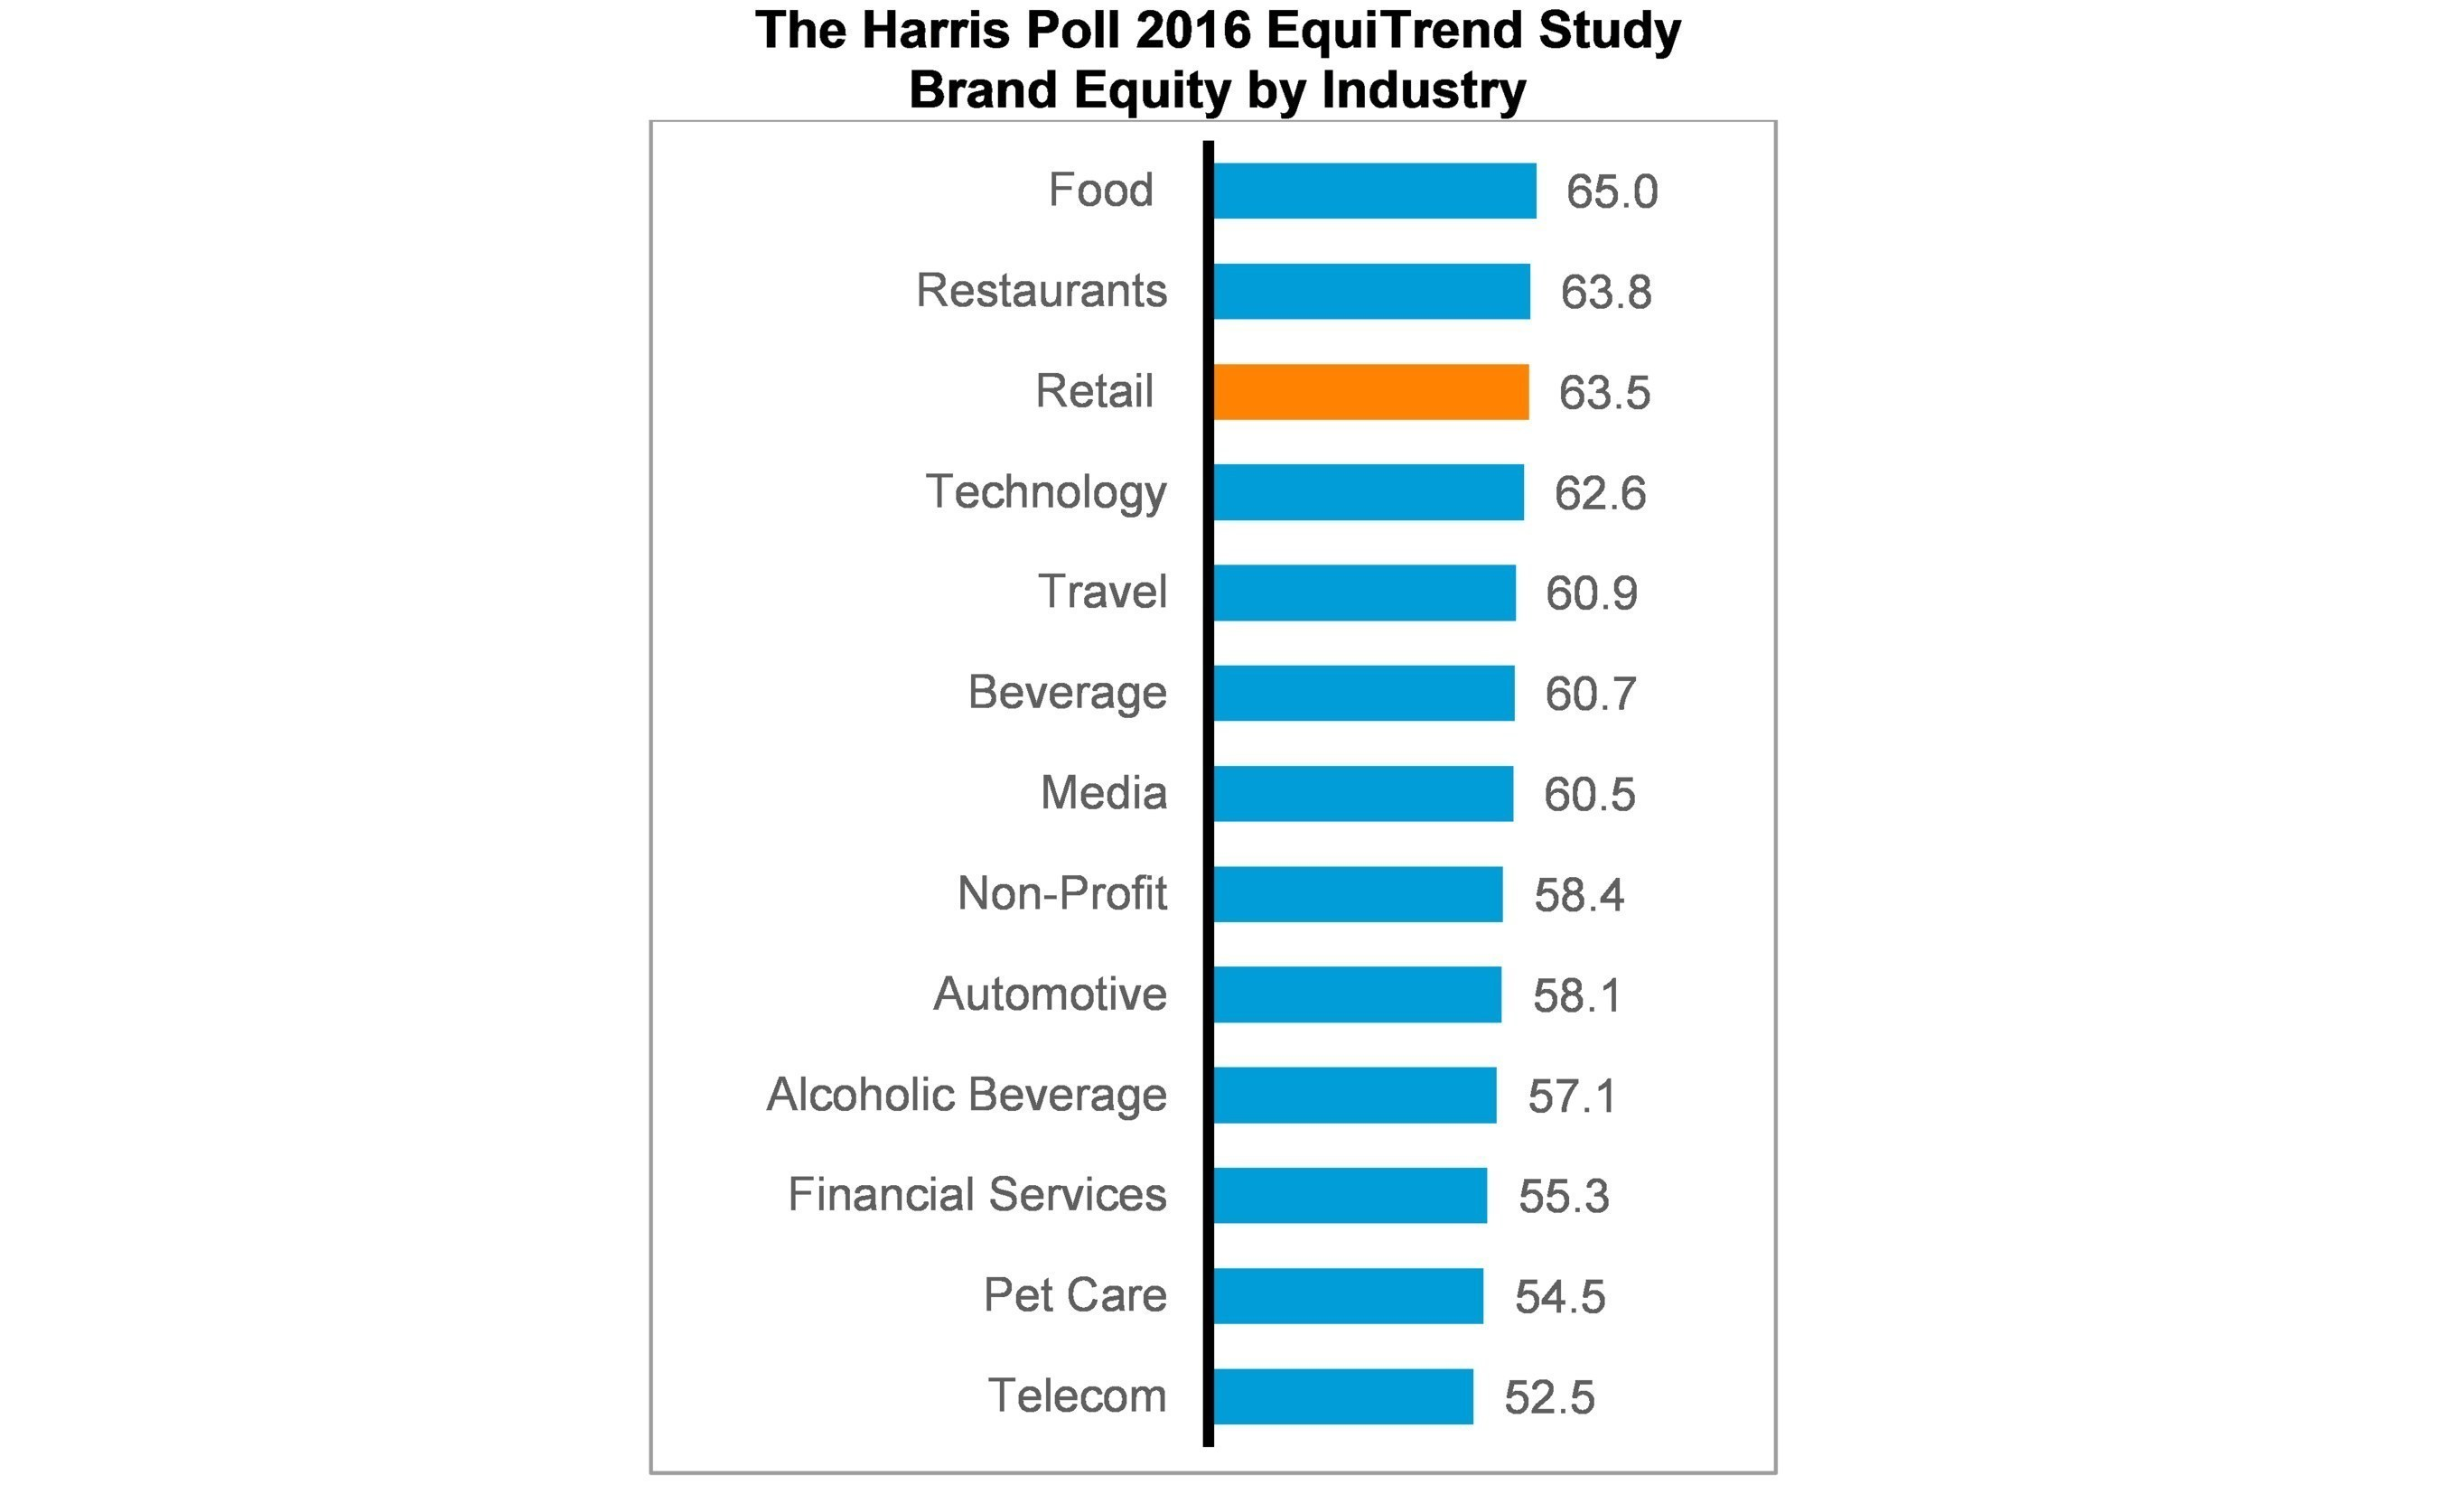 Brand equity by industry